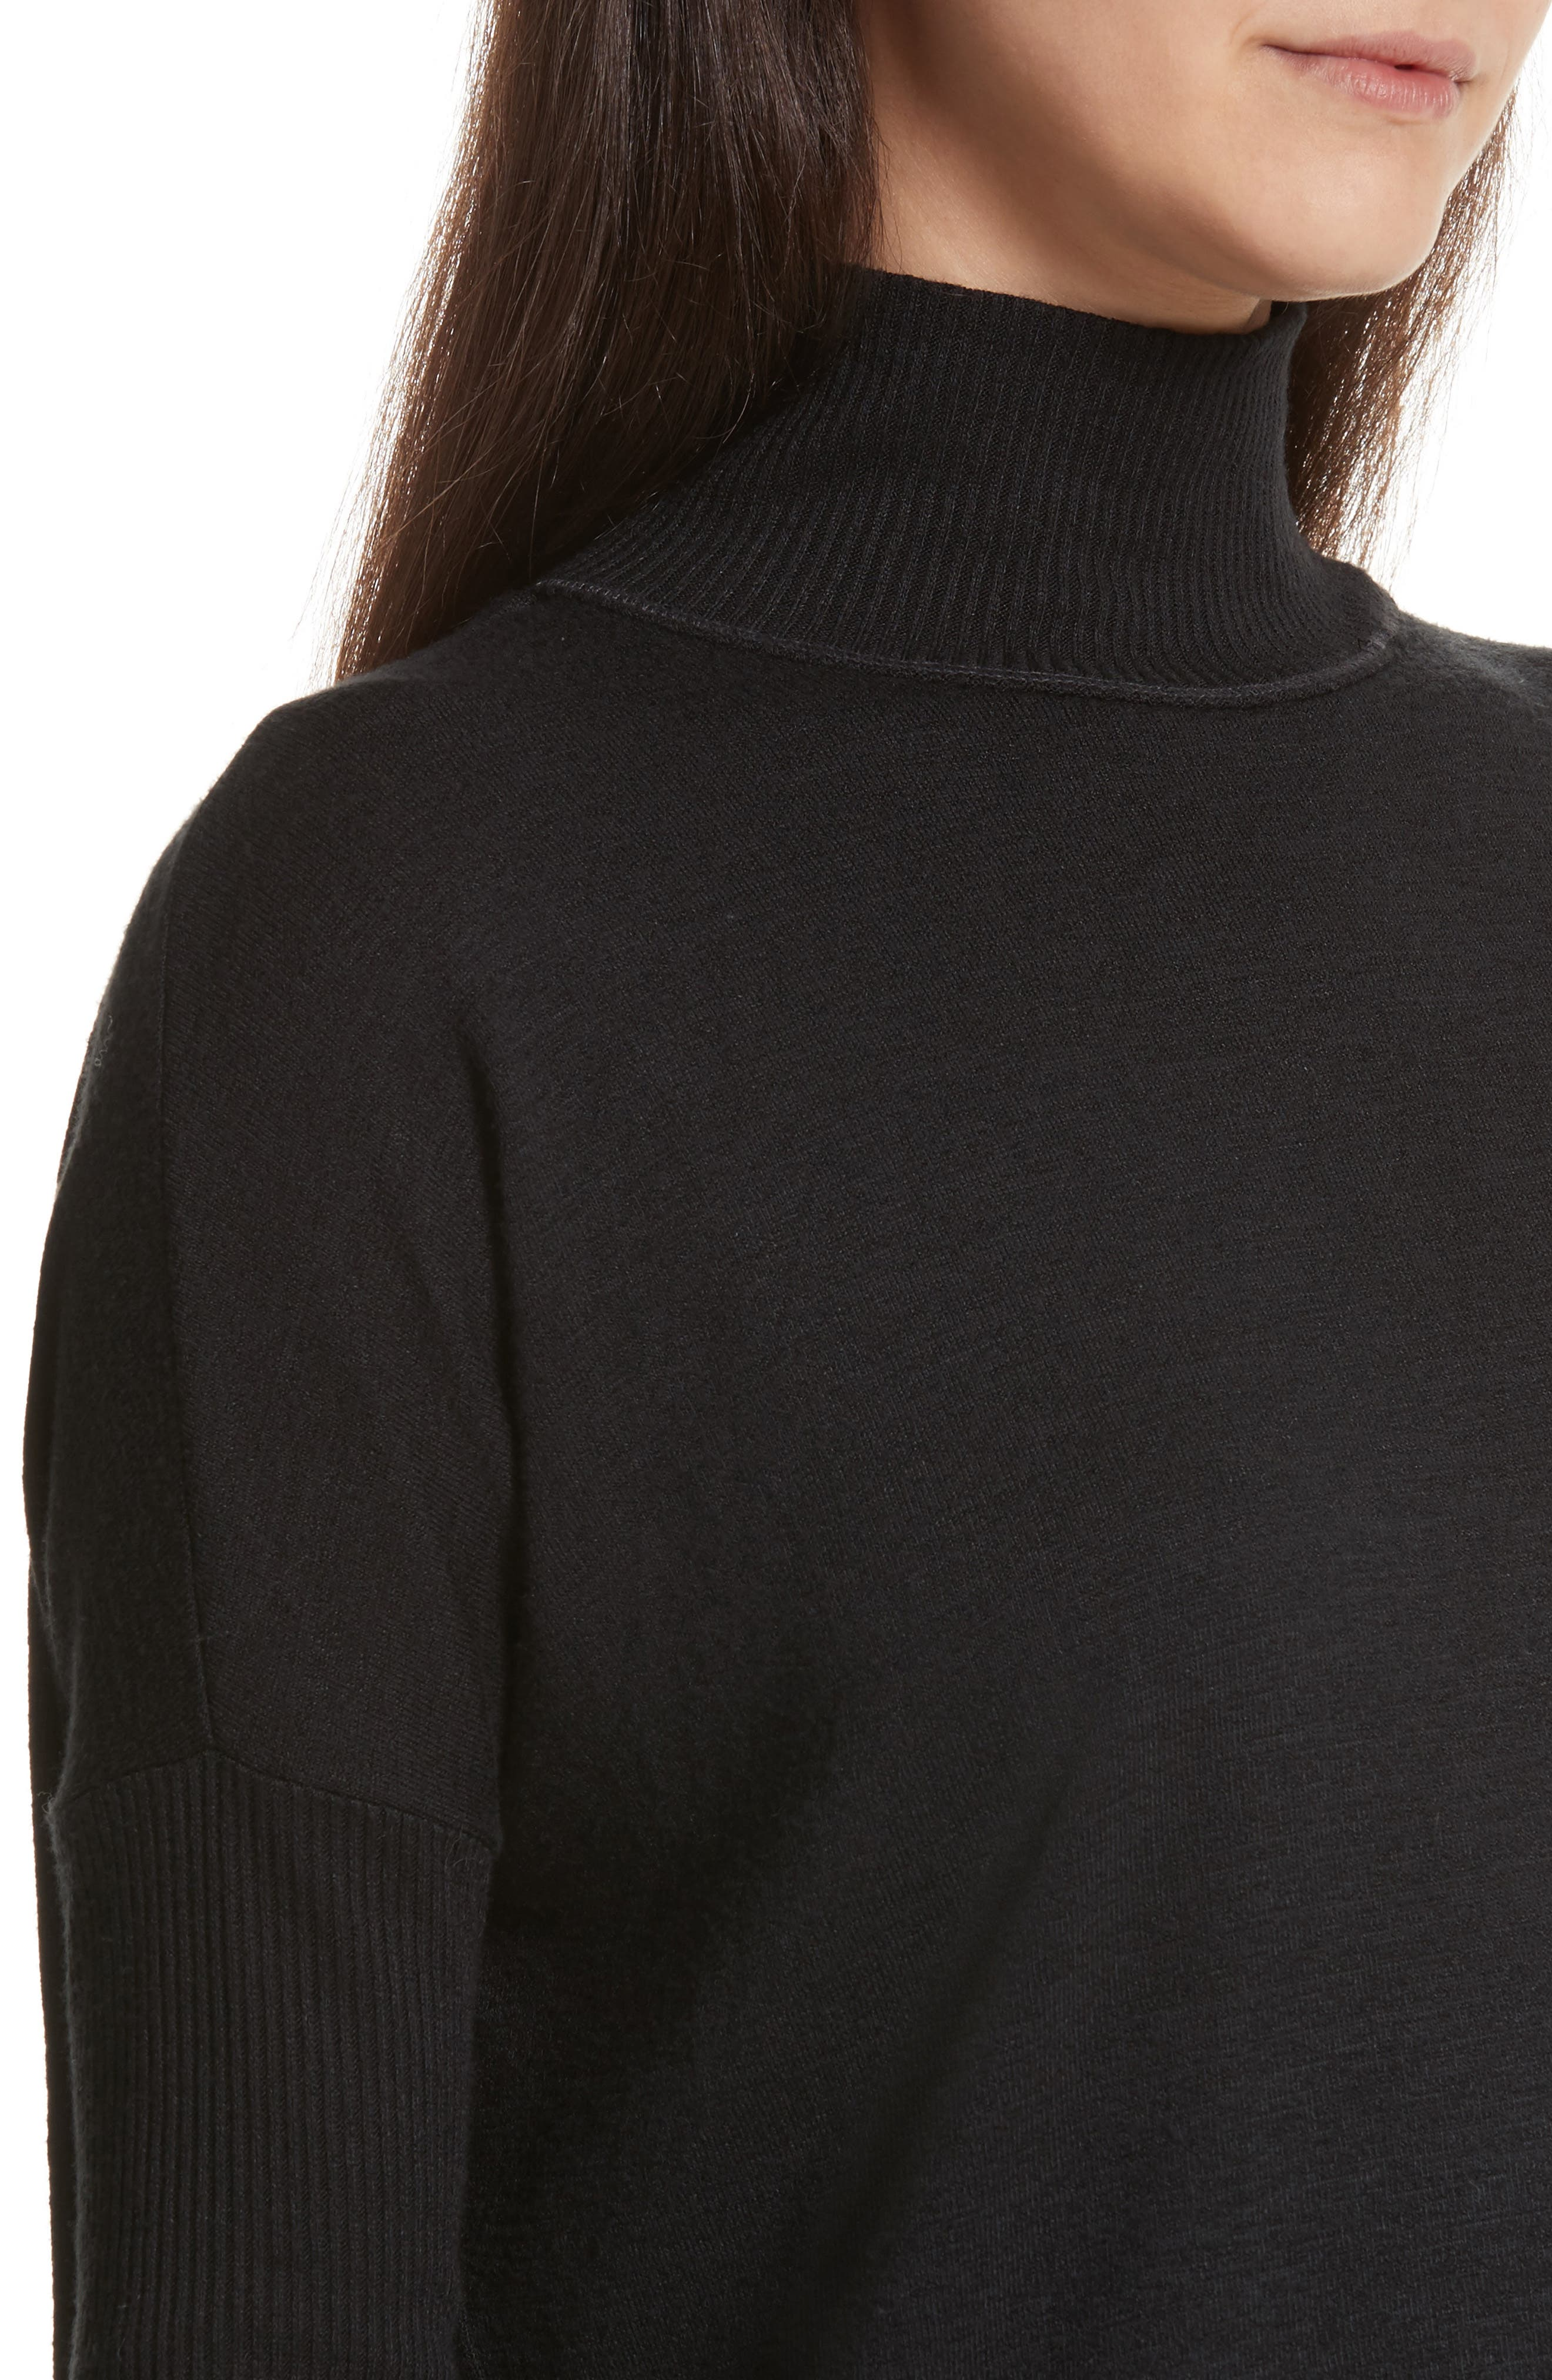 JEAN Amelie Back Cutout Turtleneck,                             Alternate thumbnail 4, color,                             001